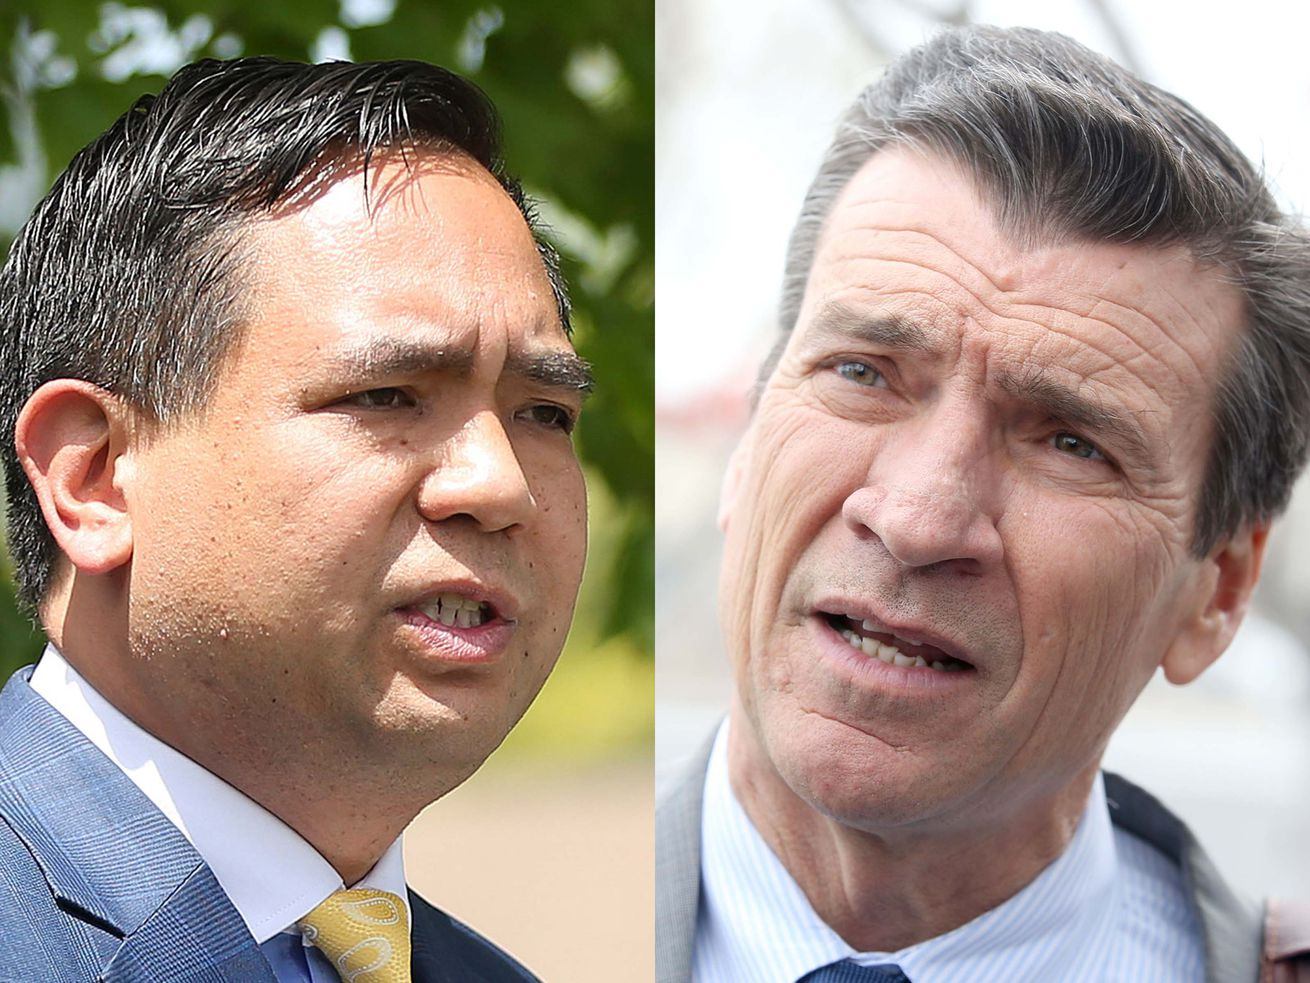 Sean Reyes leads Greg Skordas but many undecided in Utah A.G. race, poll shows